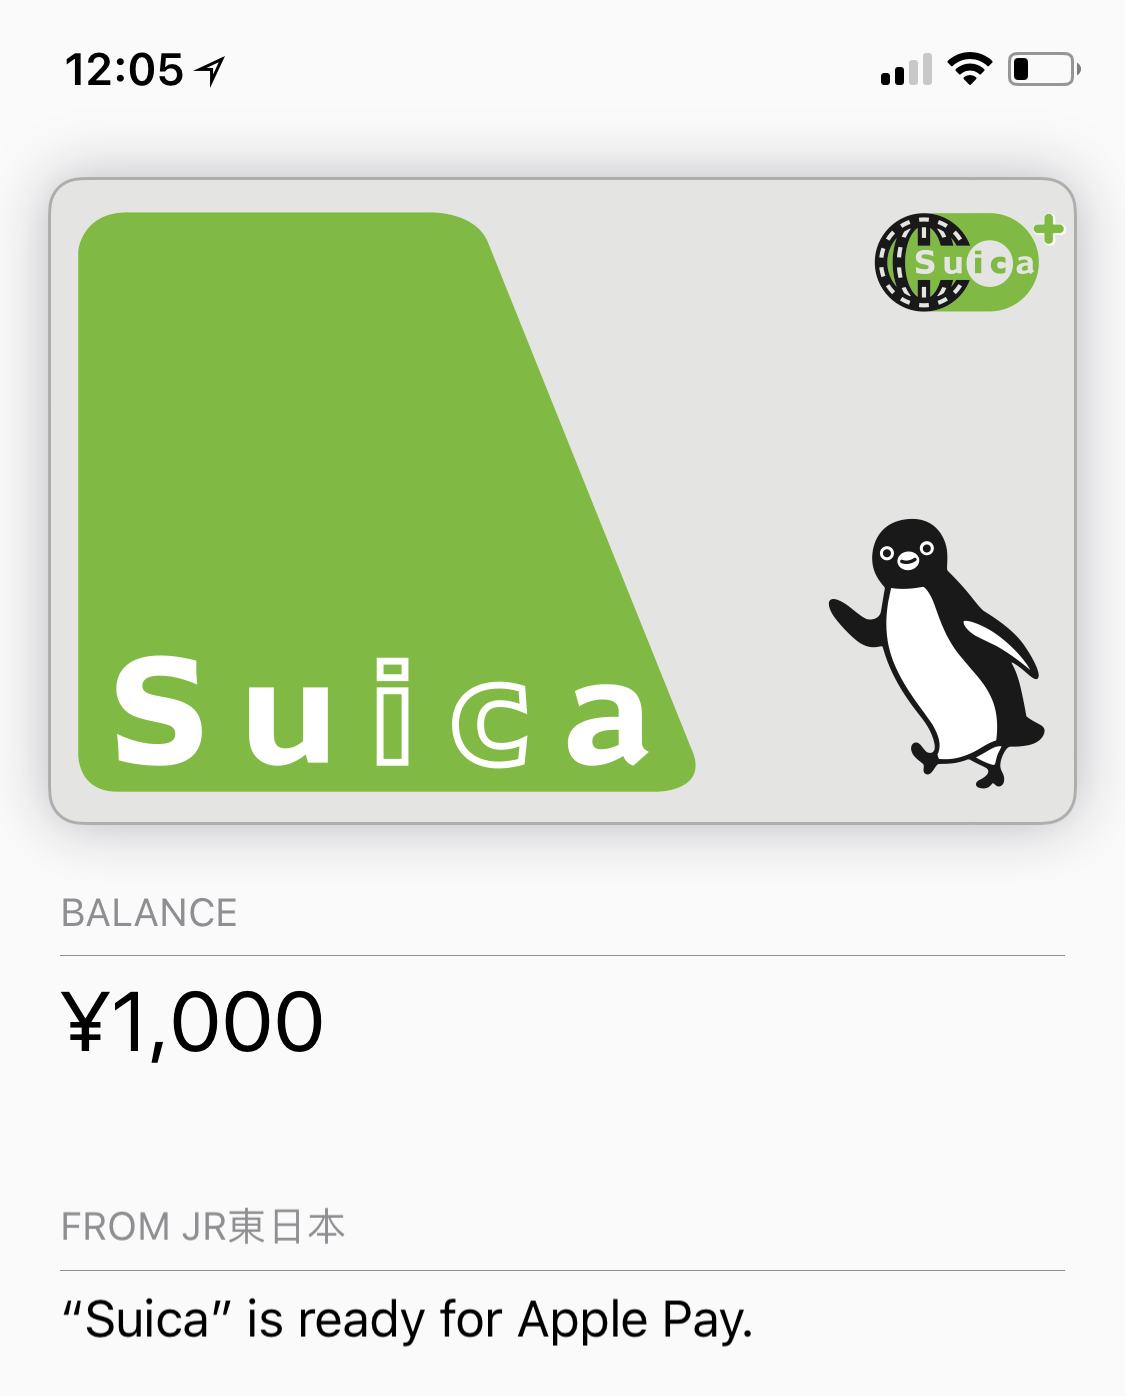 Suica card with 1,000 Yen balance in the iPhone Wallet app